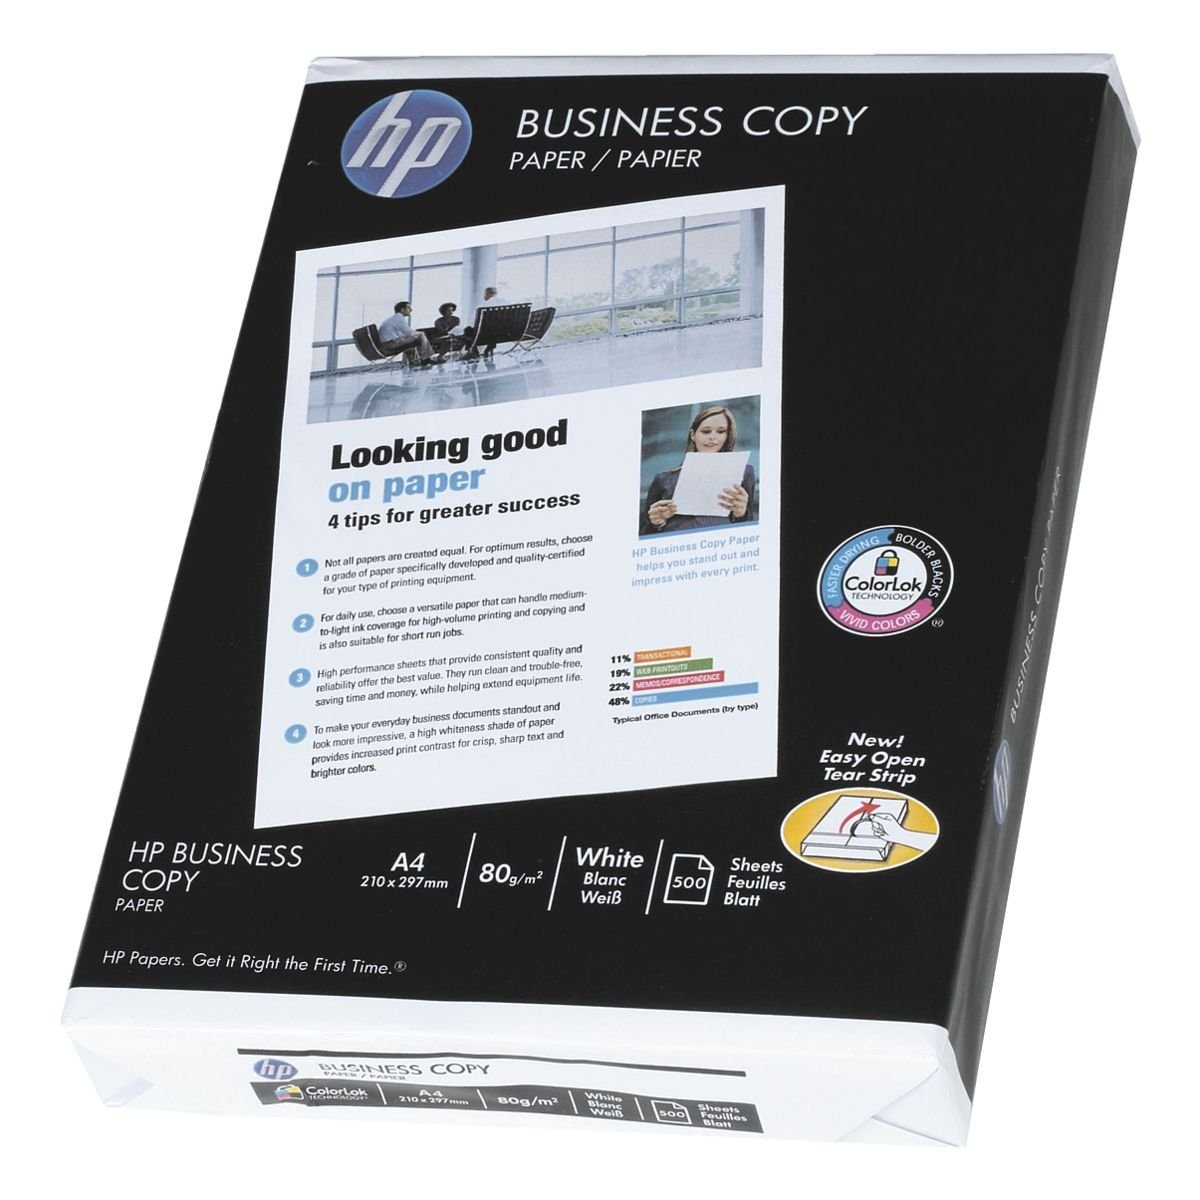 HP Kopierpapier »Business Copy«